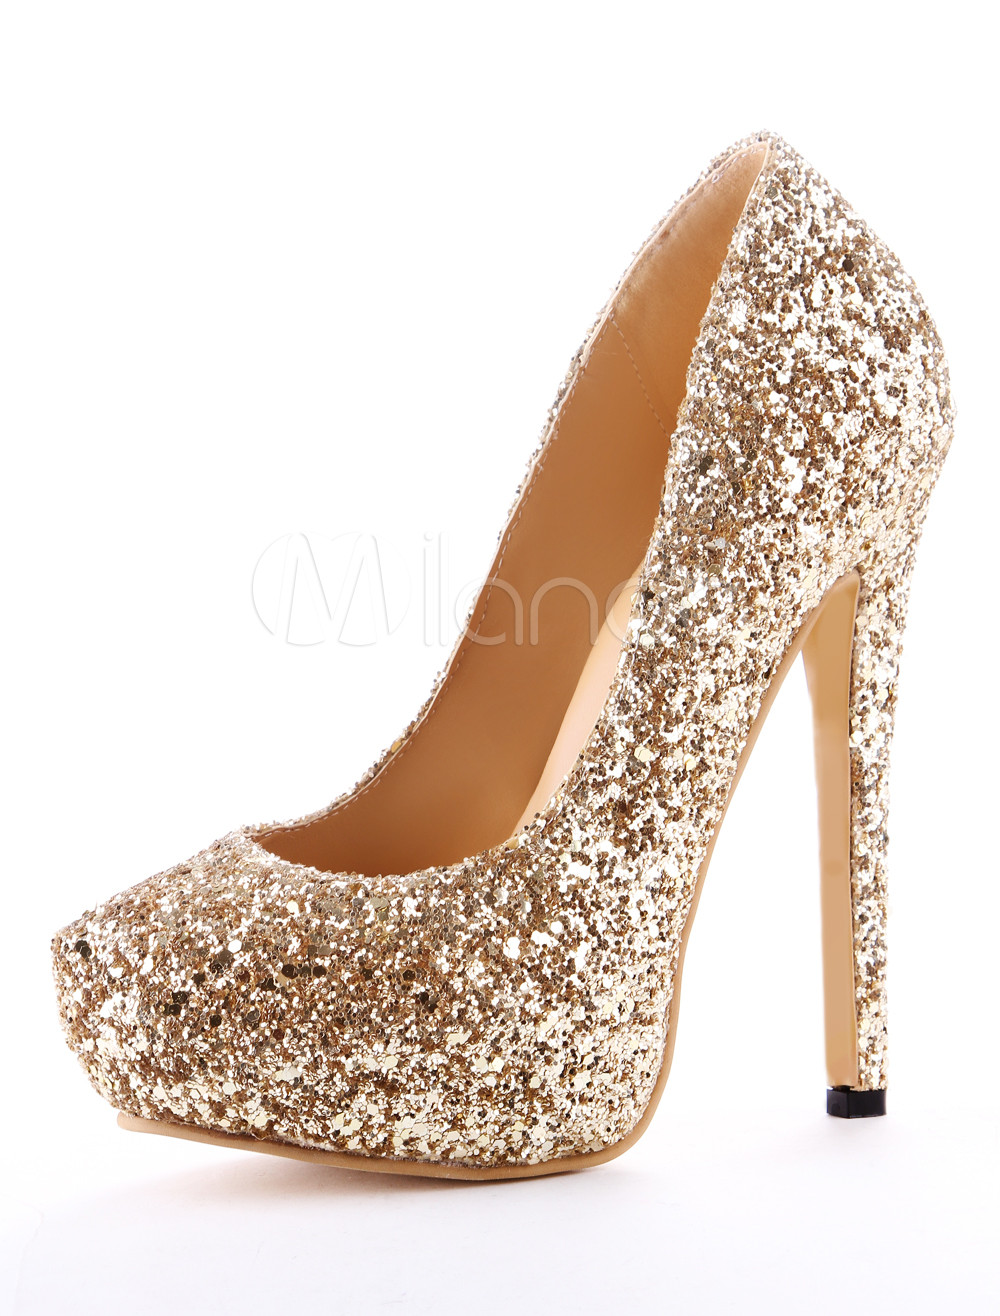 Buy 2019 Evening   Wedding Shoes Online  75836adcde58